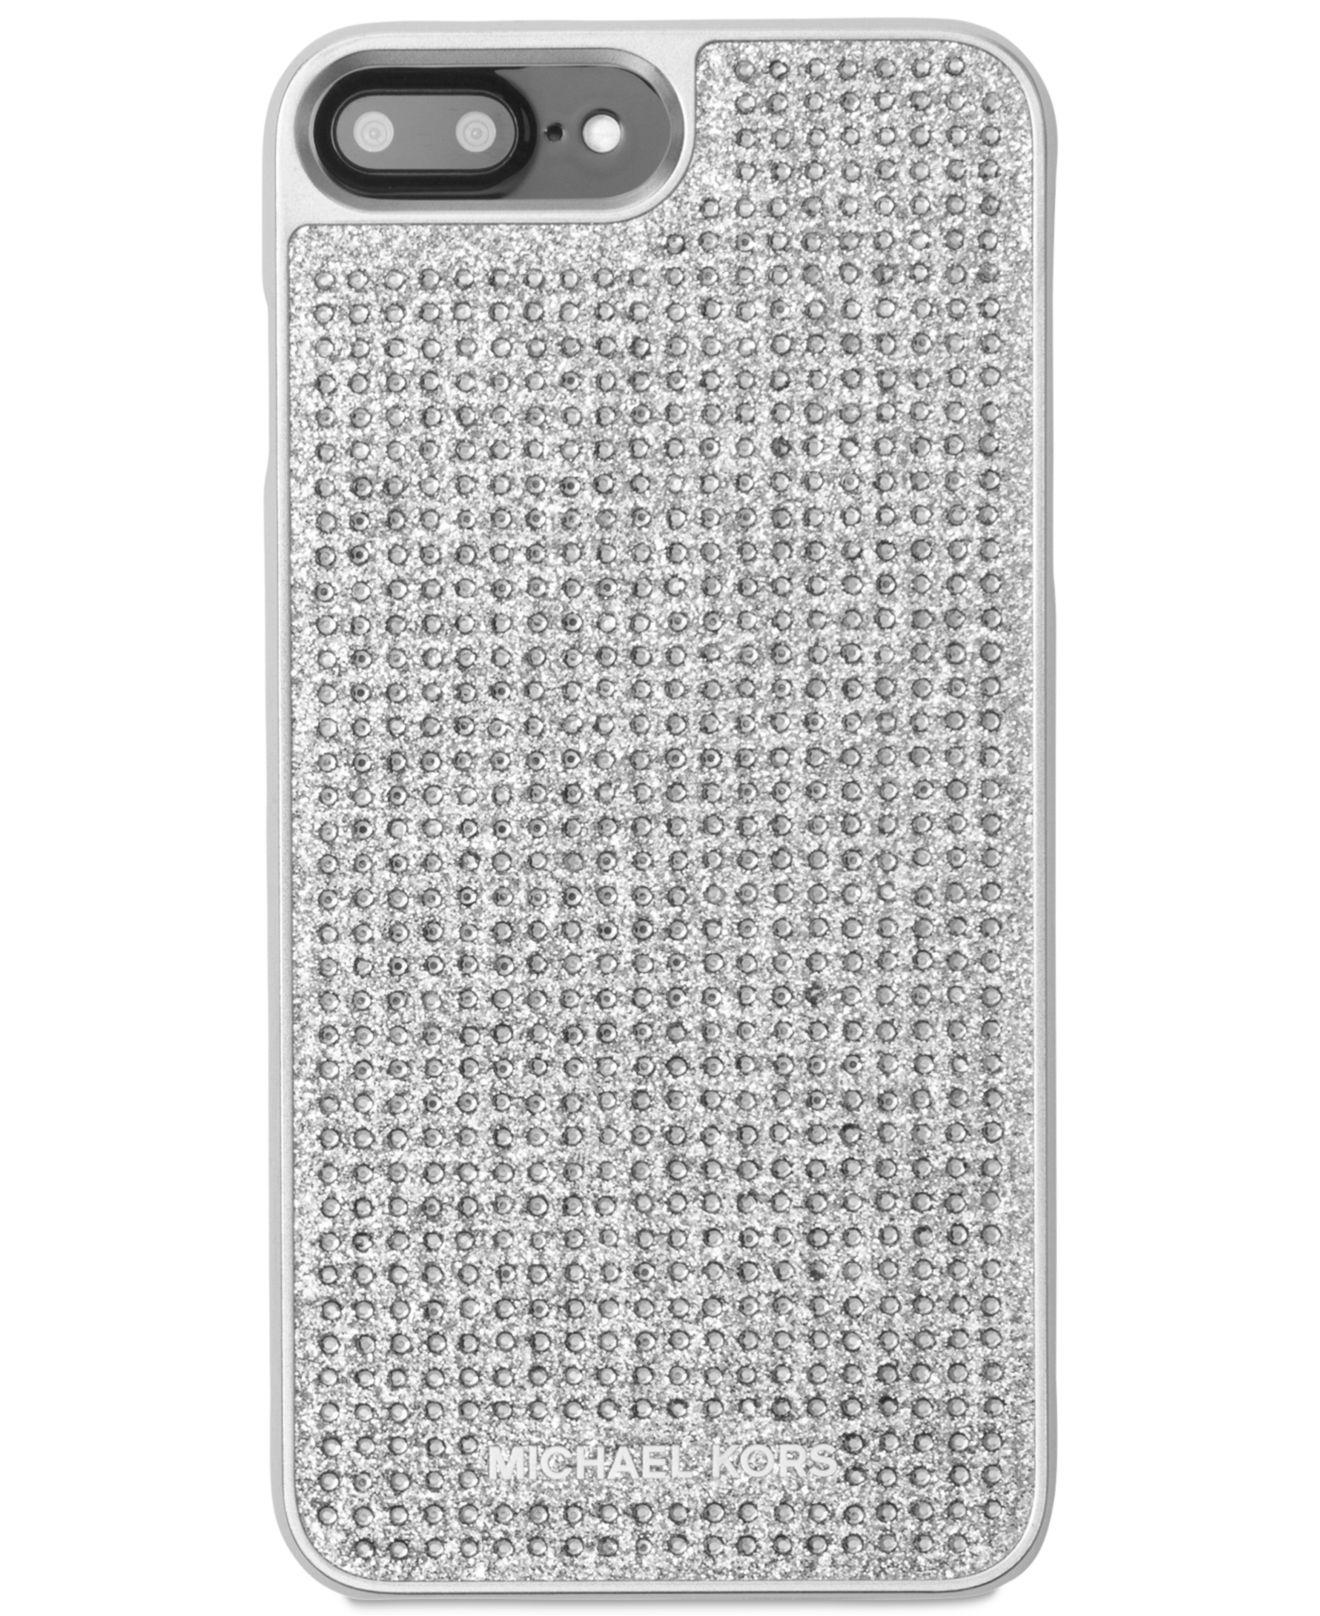 reputable site 2838c 22af5 Michael Kors Metallic Letters Iphone 8 Plus Cover